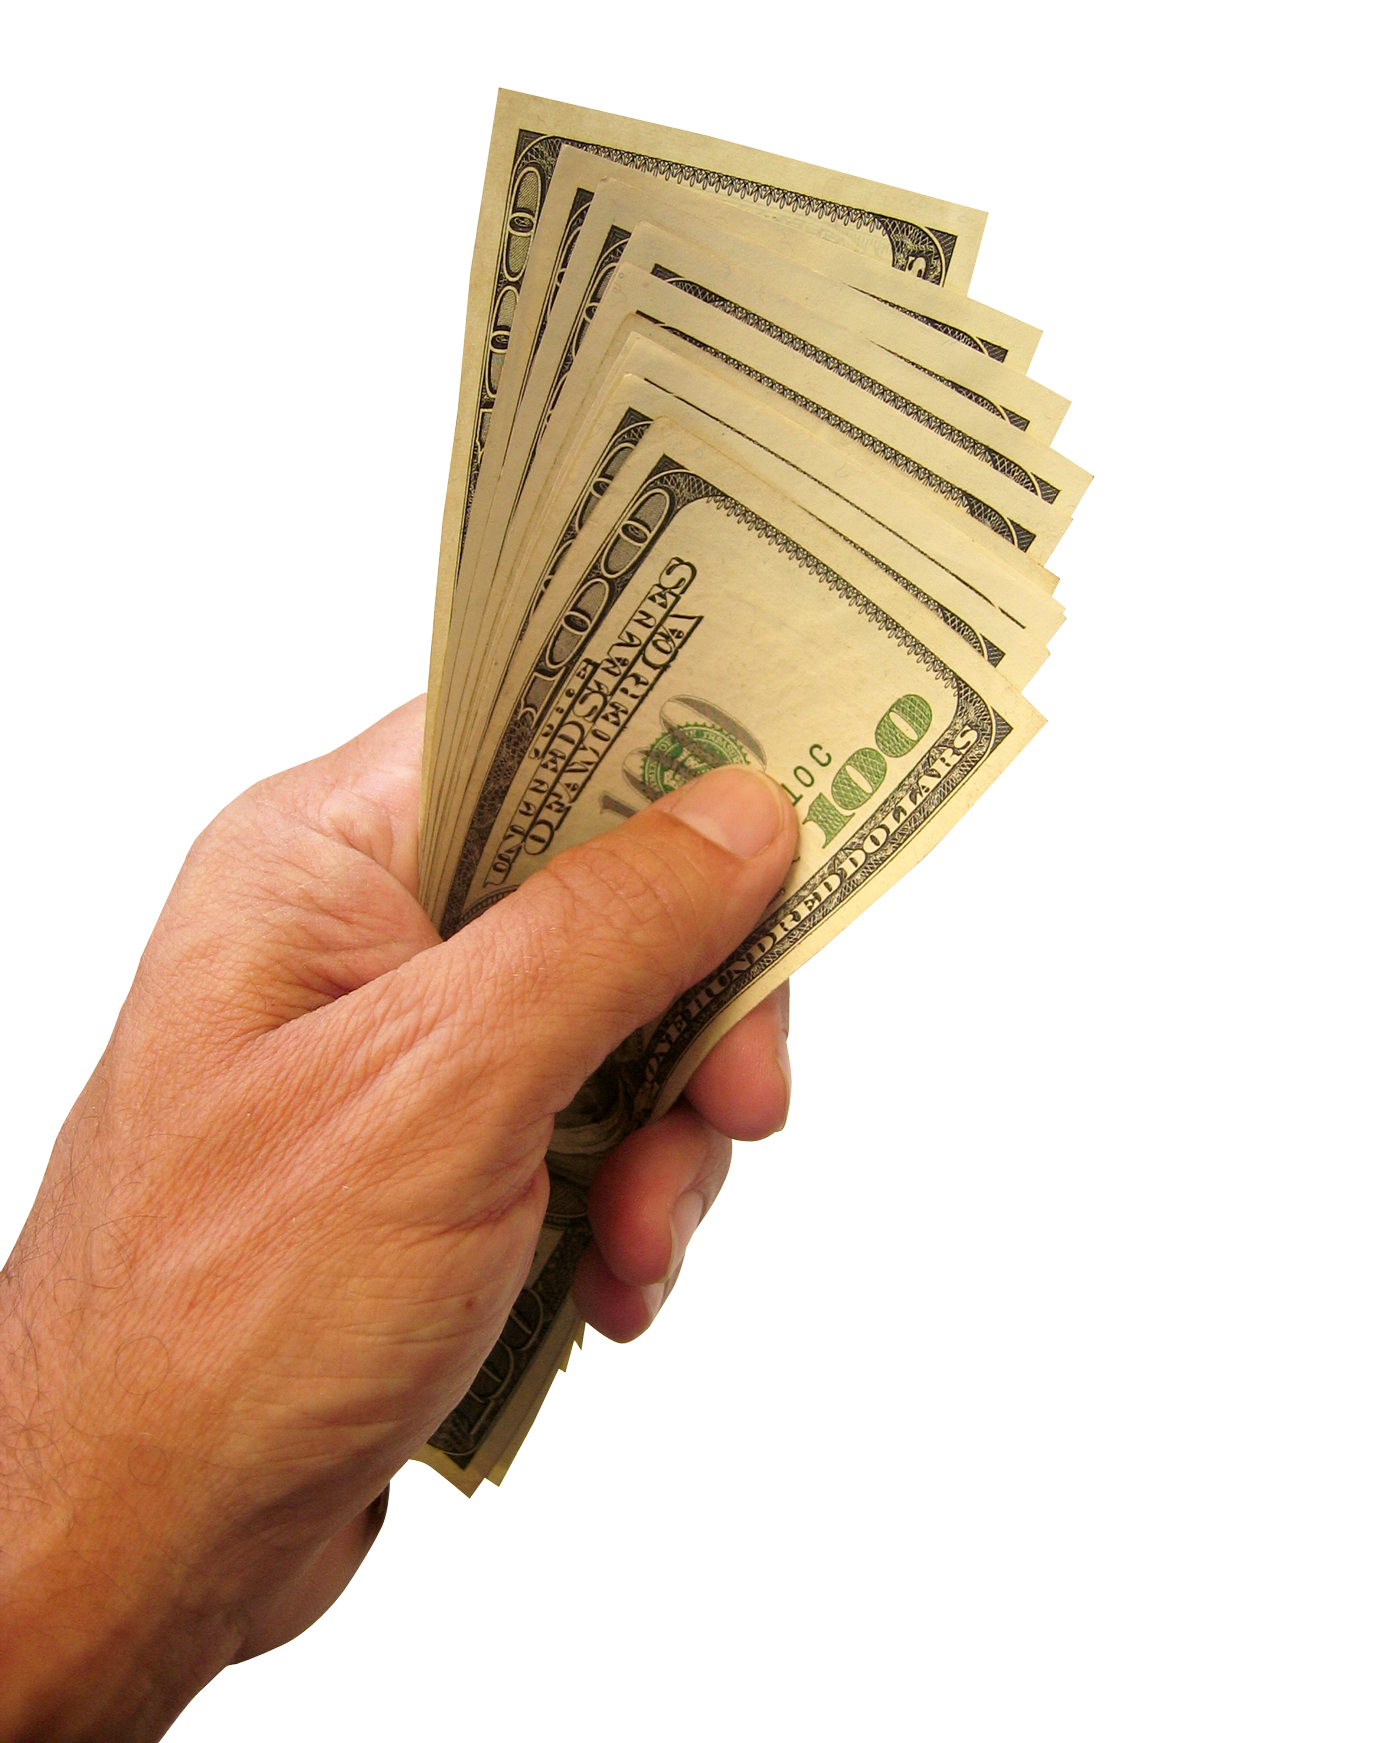 Account Money Dollars Budget Us Hand Savings PNG Image